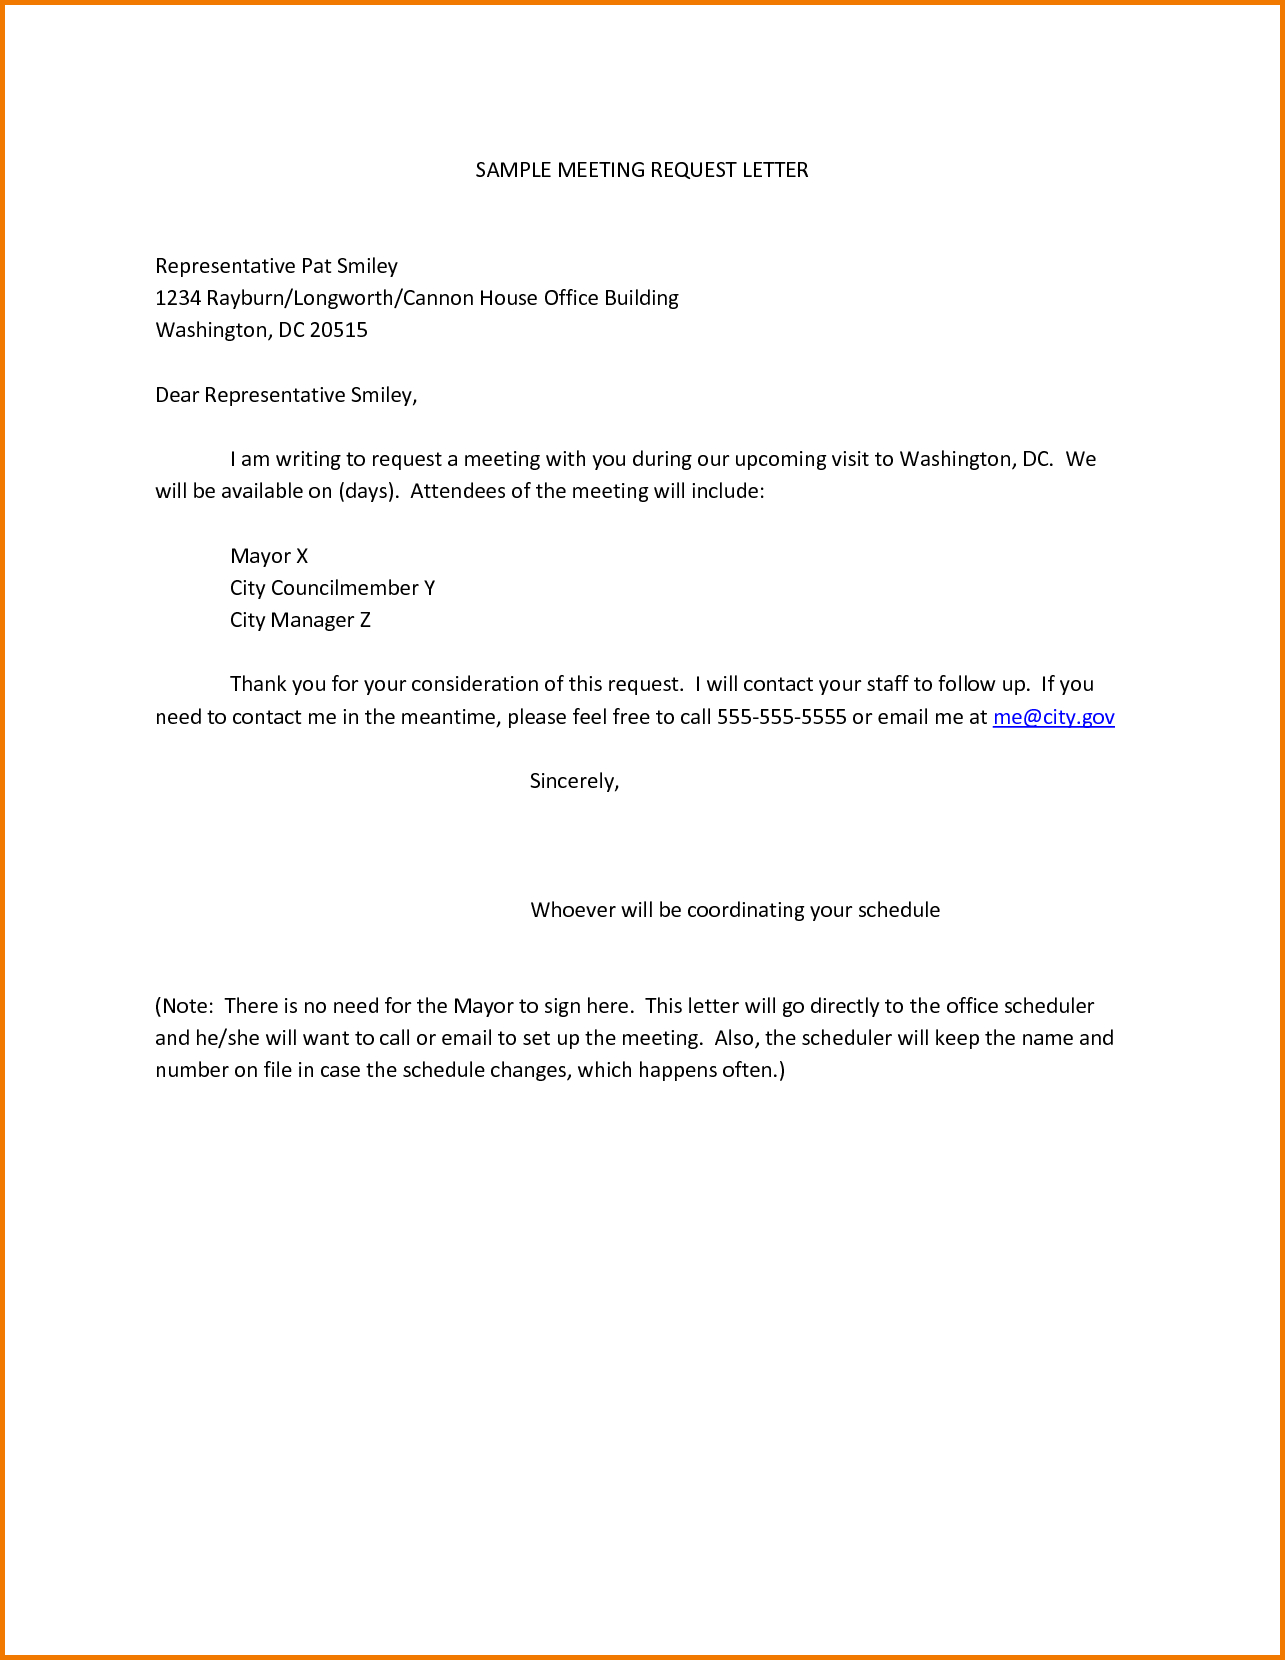 Formal Demand Letter Template - Sample Meeting Request Letter Representative Pat Smiley Rayburn